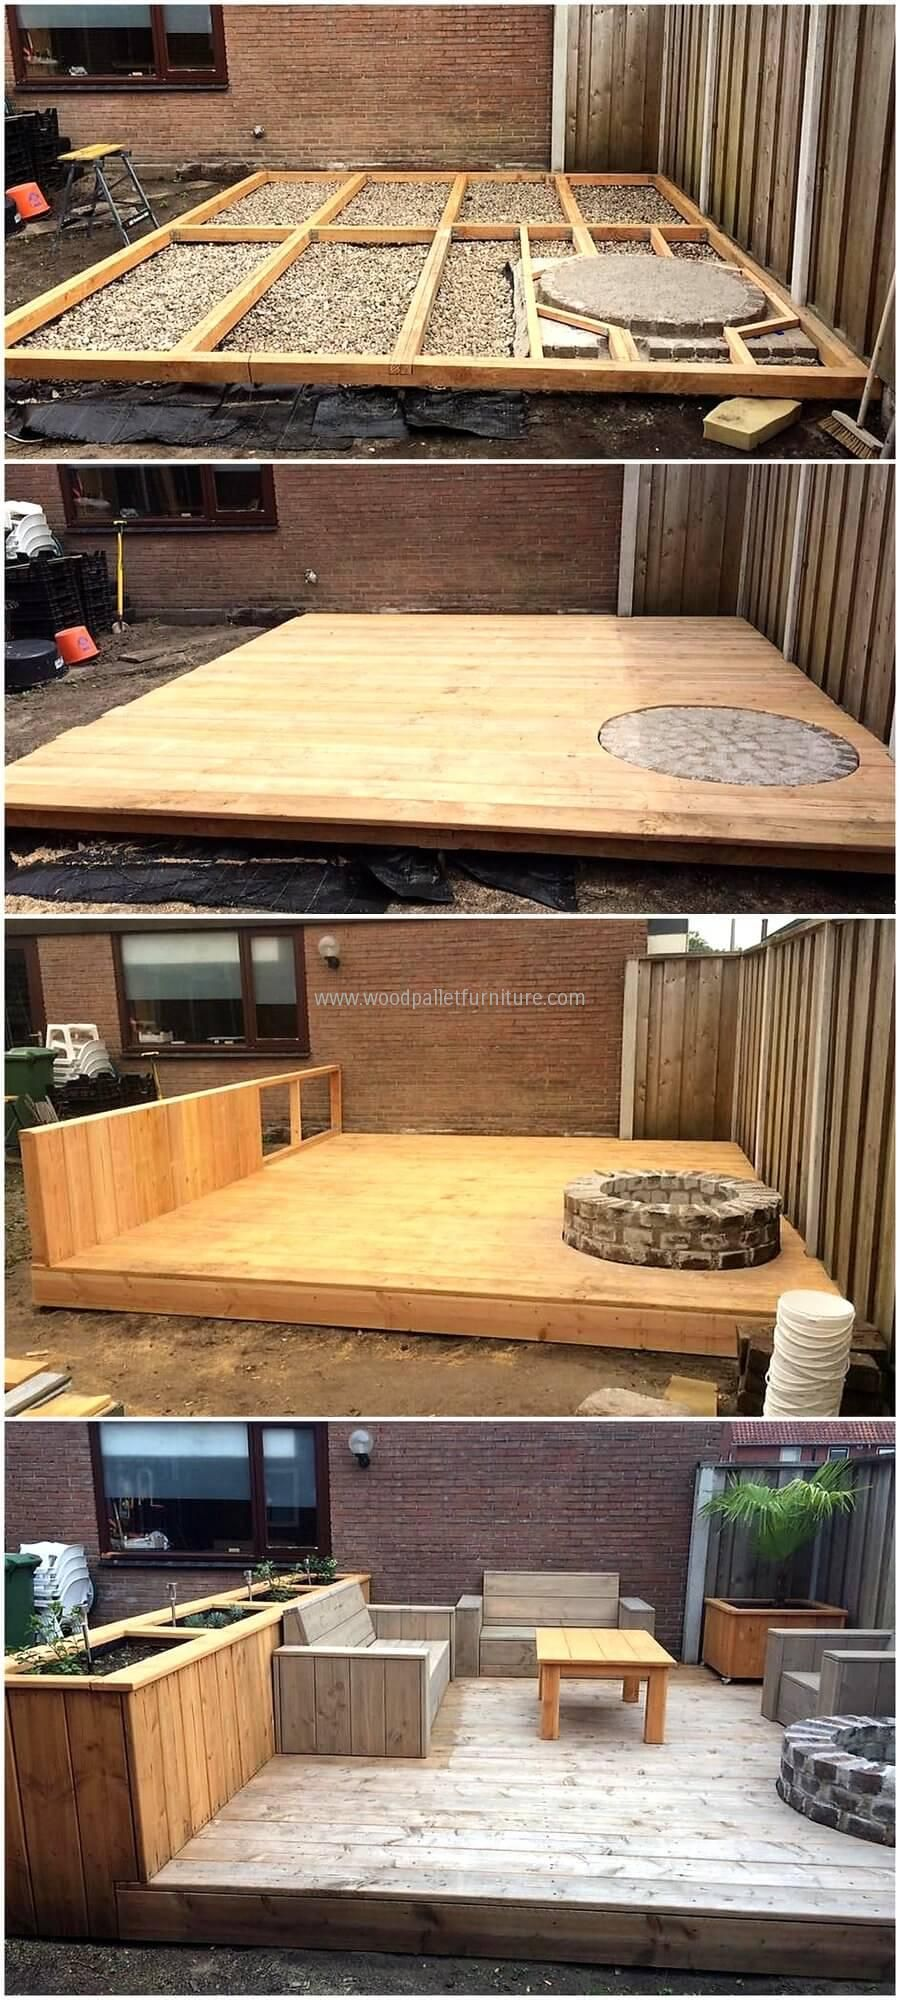 Diy Wood Pallets Terrace Project Garden And Outdoor